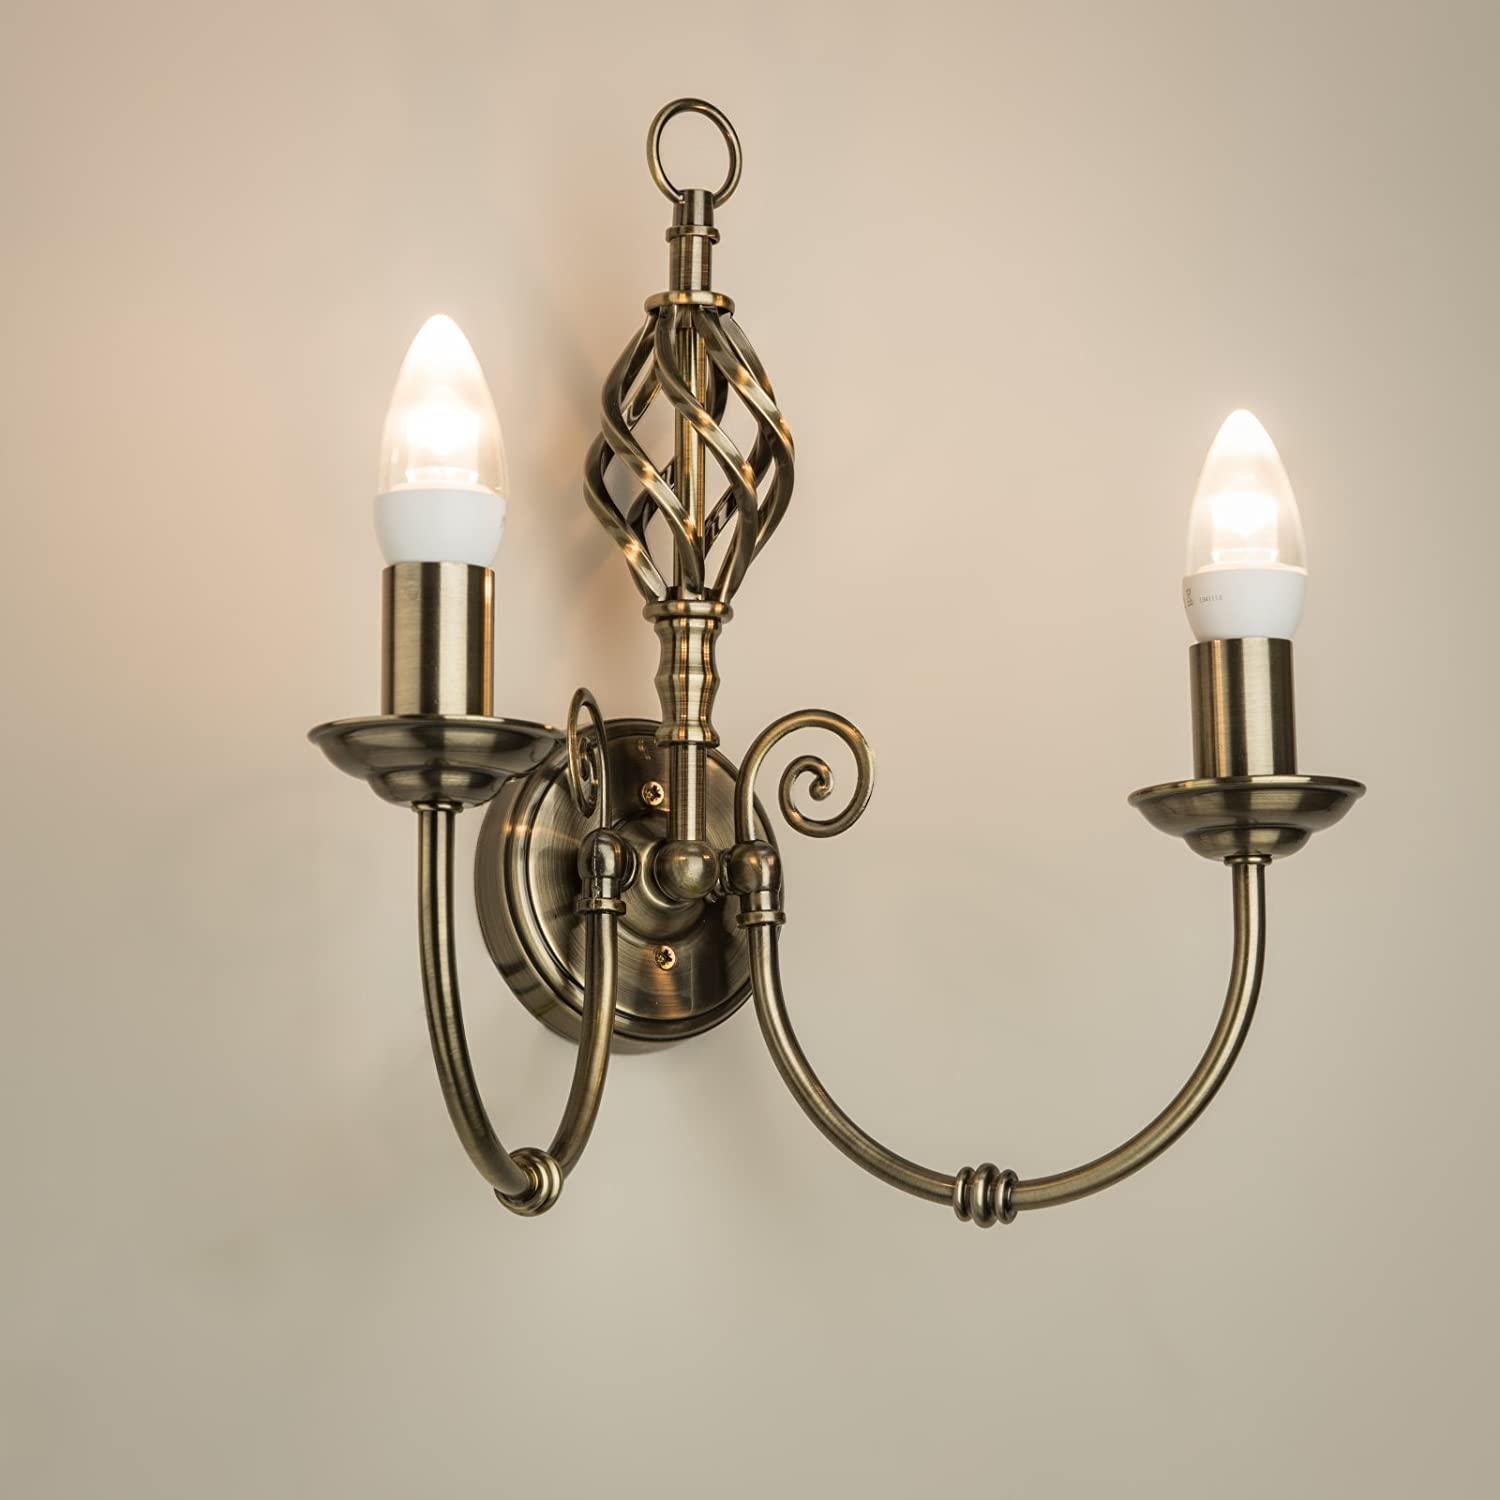 Kingswood Barley Twist Traditional Wall Light - Antique Brass Lighting Supermarket AND0017